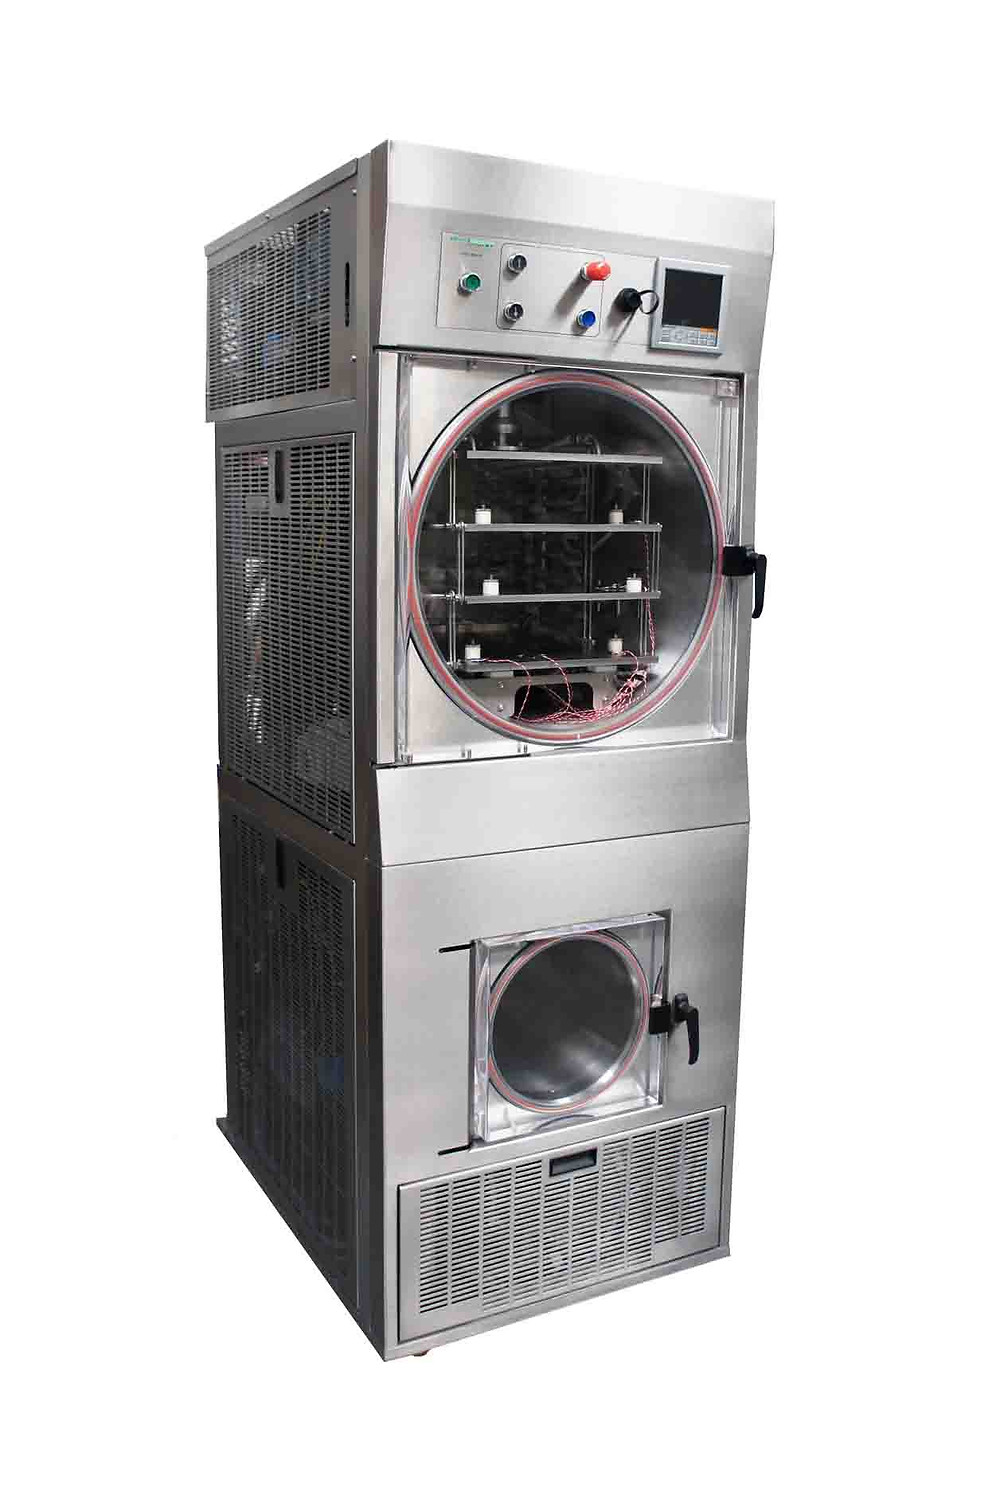 Pilot-scale LyoDry Maxi Freeze Dryer is available with either 3, 4 or 5 shelves, each measuring 360mm W x 480mm D, up to a total of 0.86m2 drying space.